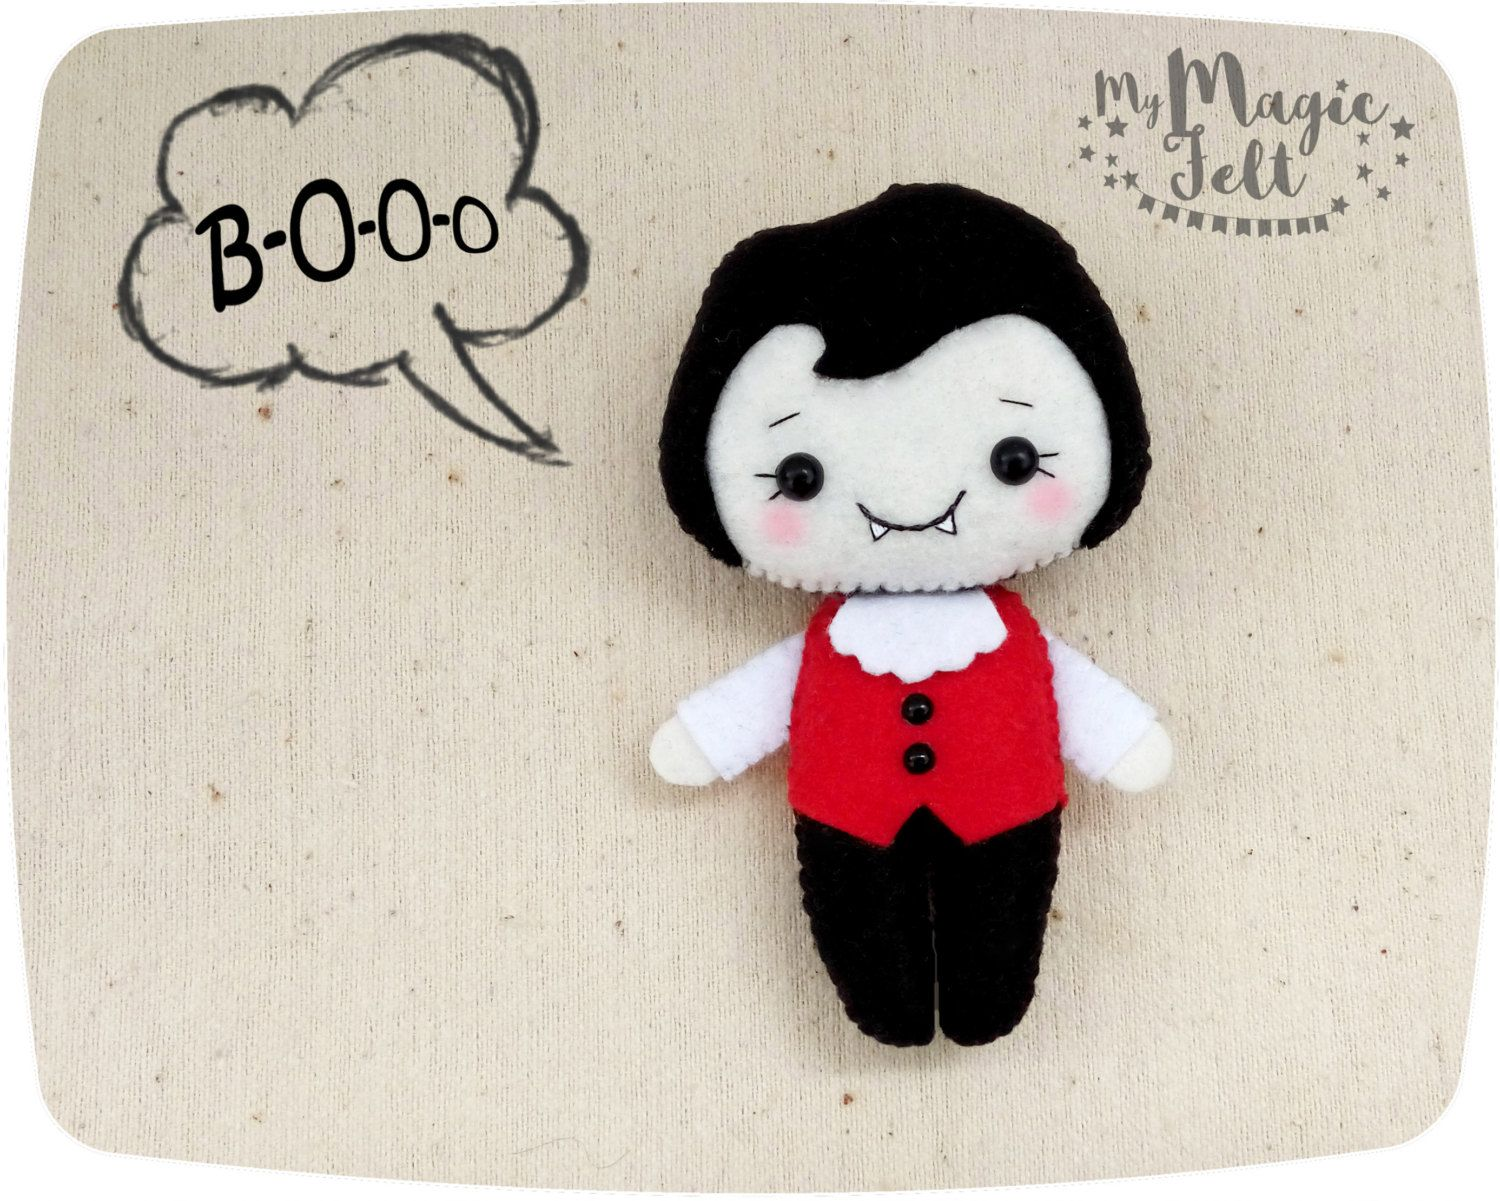 halloween felt ornament dracula halloween decor cute felt halloween gift vampire halloween decorations party favors felt - Vampire Halloween Decorations